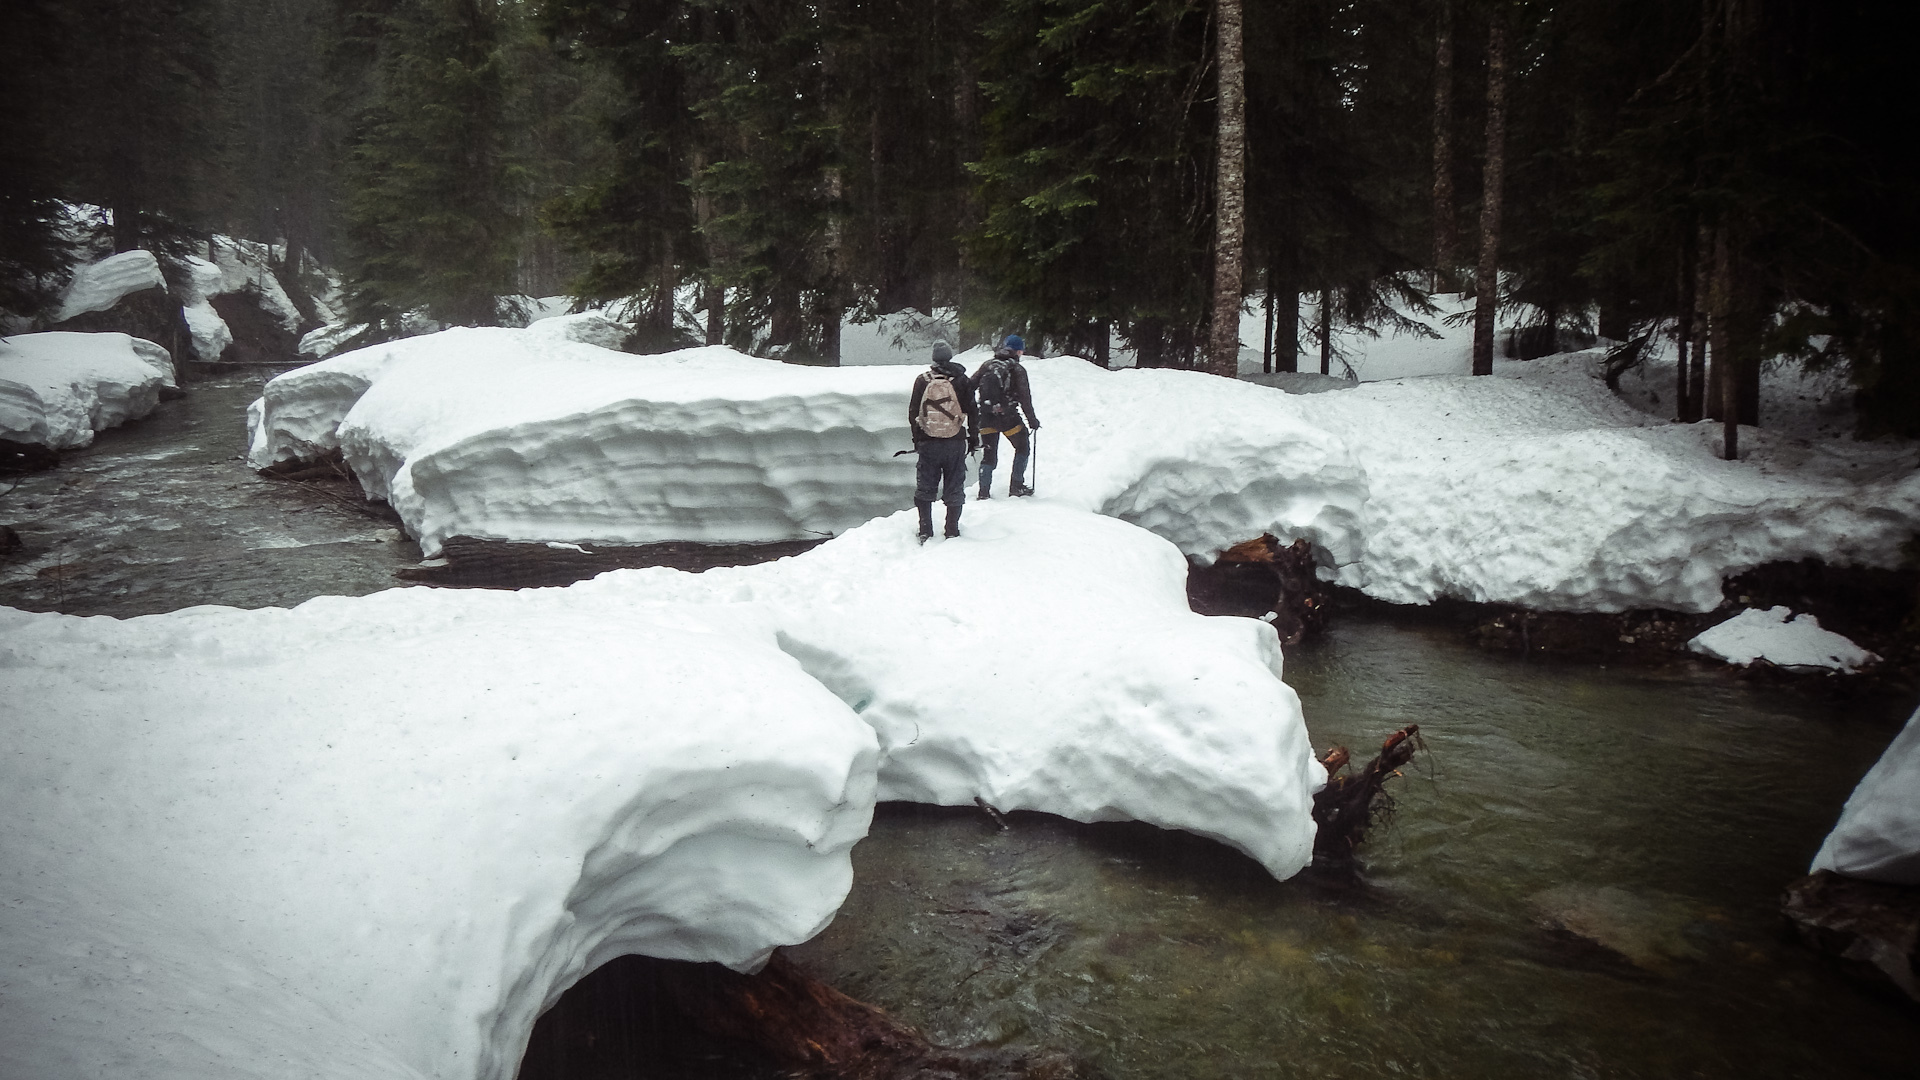 Hiking last year crossing a stable snow bridge across the Snoqualmie river